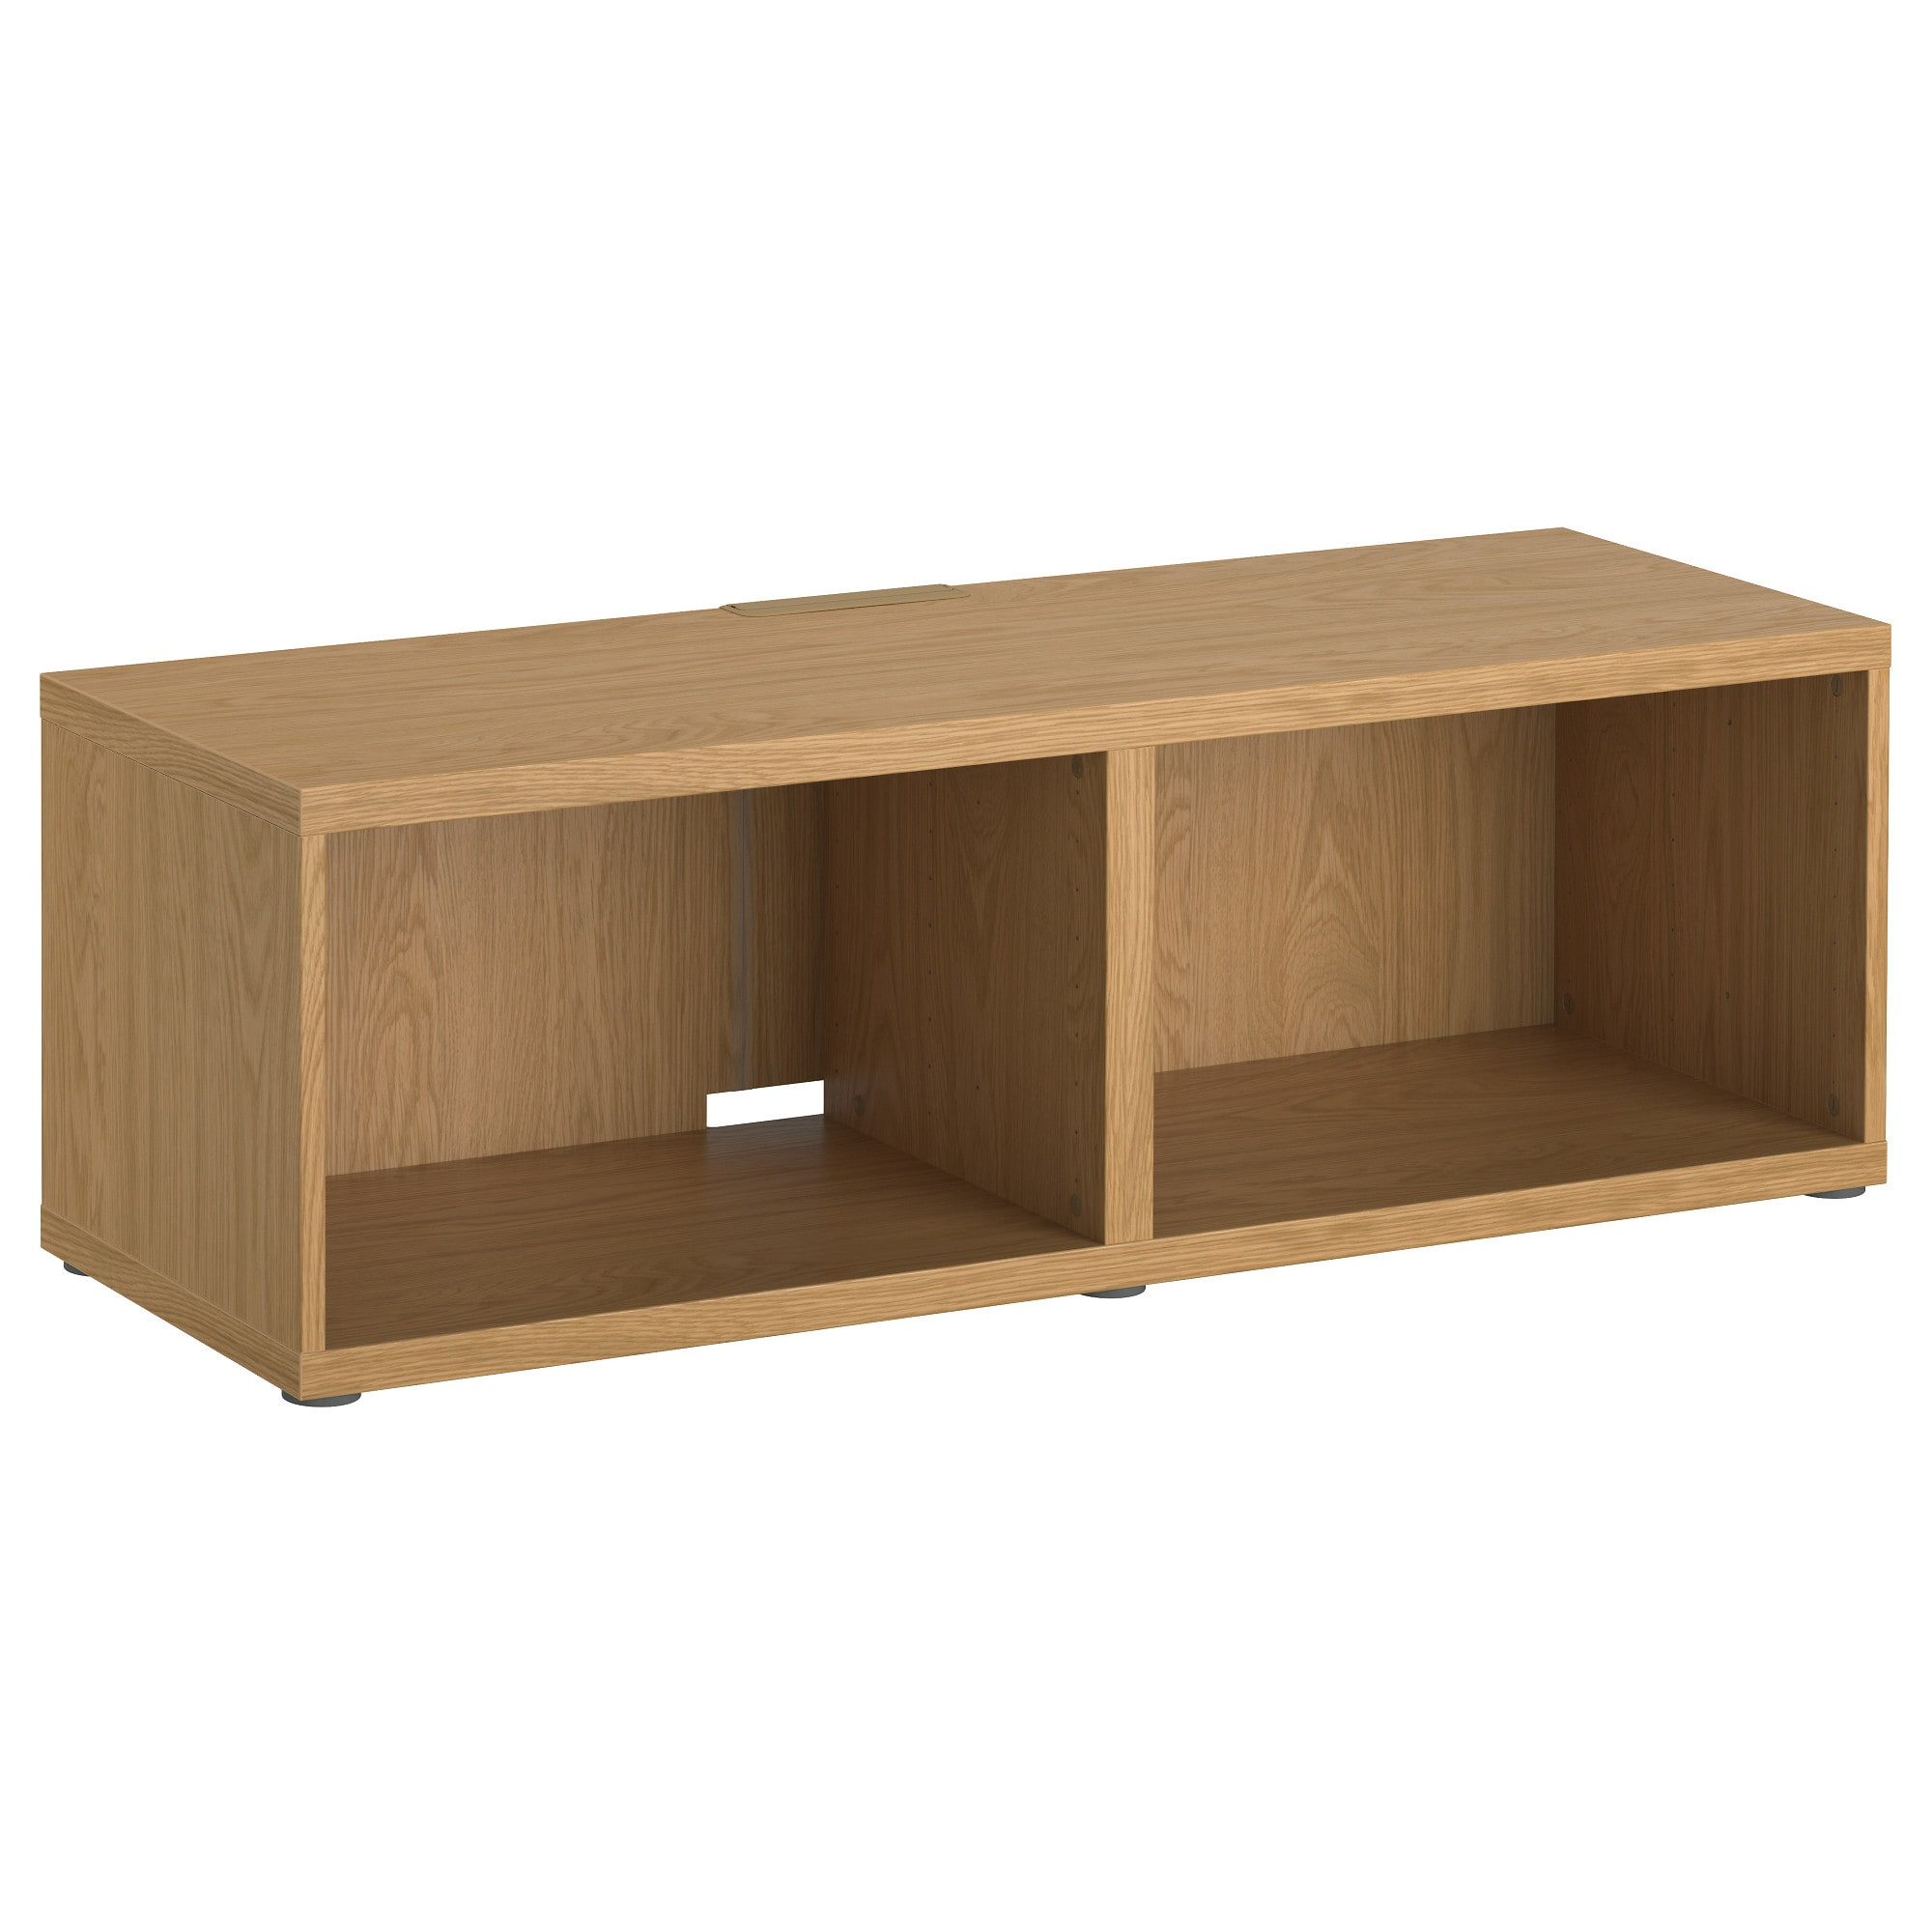 Ikea Regarding Pine Tv Cabinets (Gallery 16 of 20)